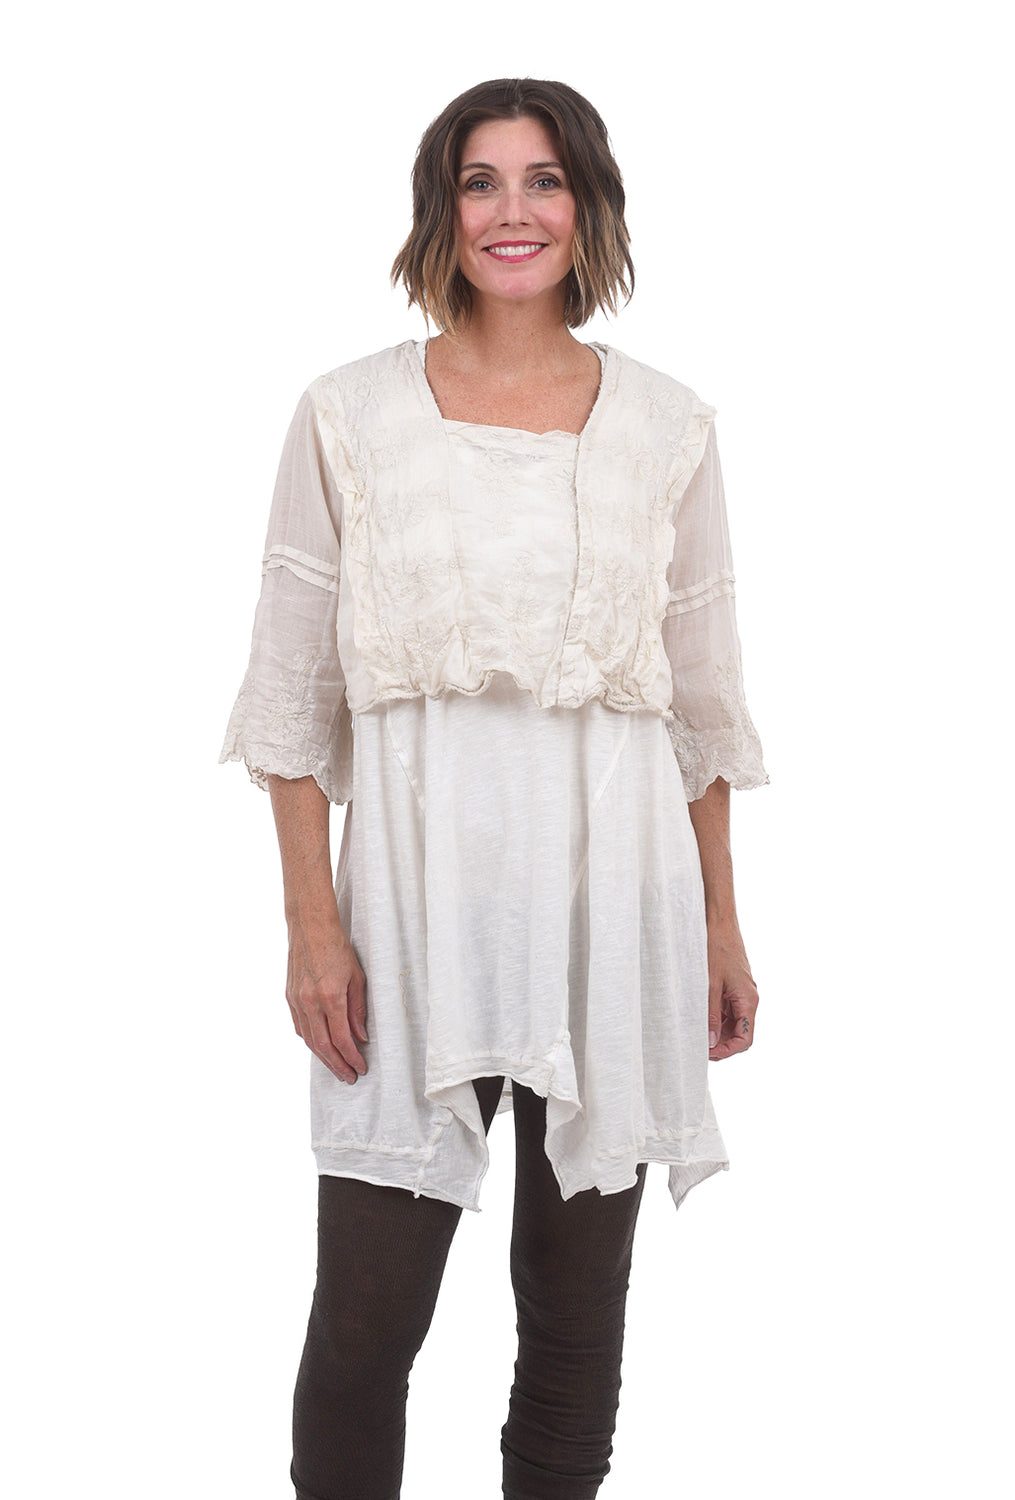 Magnolia Pearl Cropped Grete Blouse, Moonlight One Size Moonlight